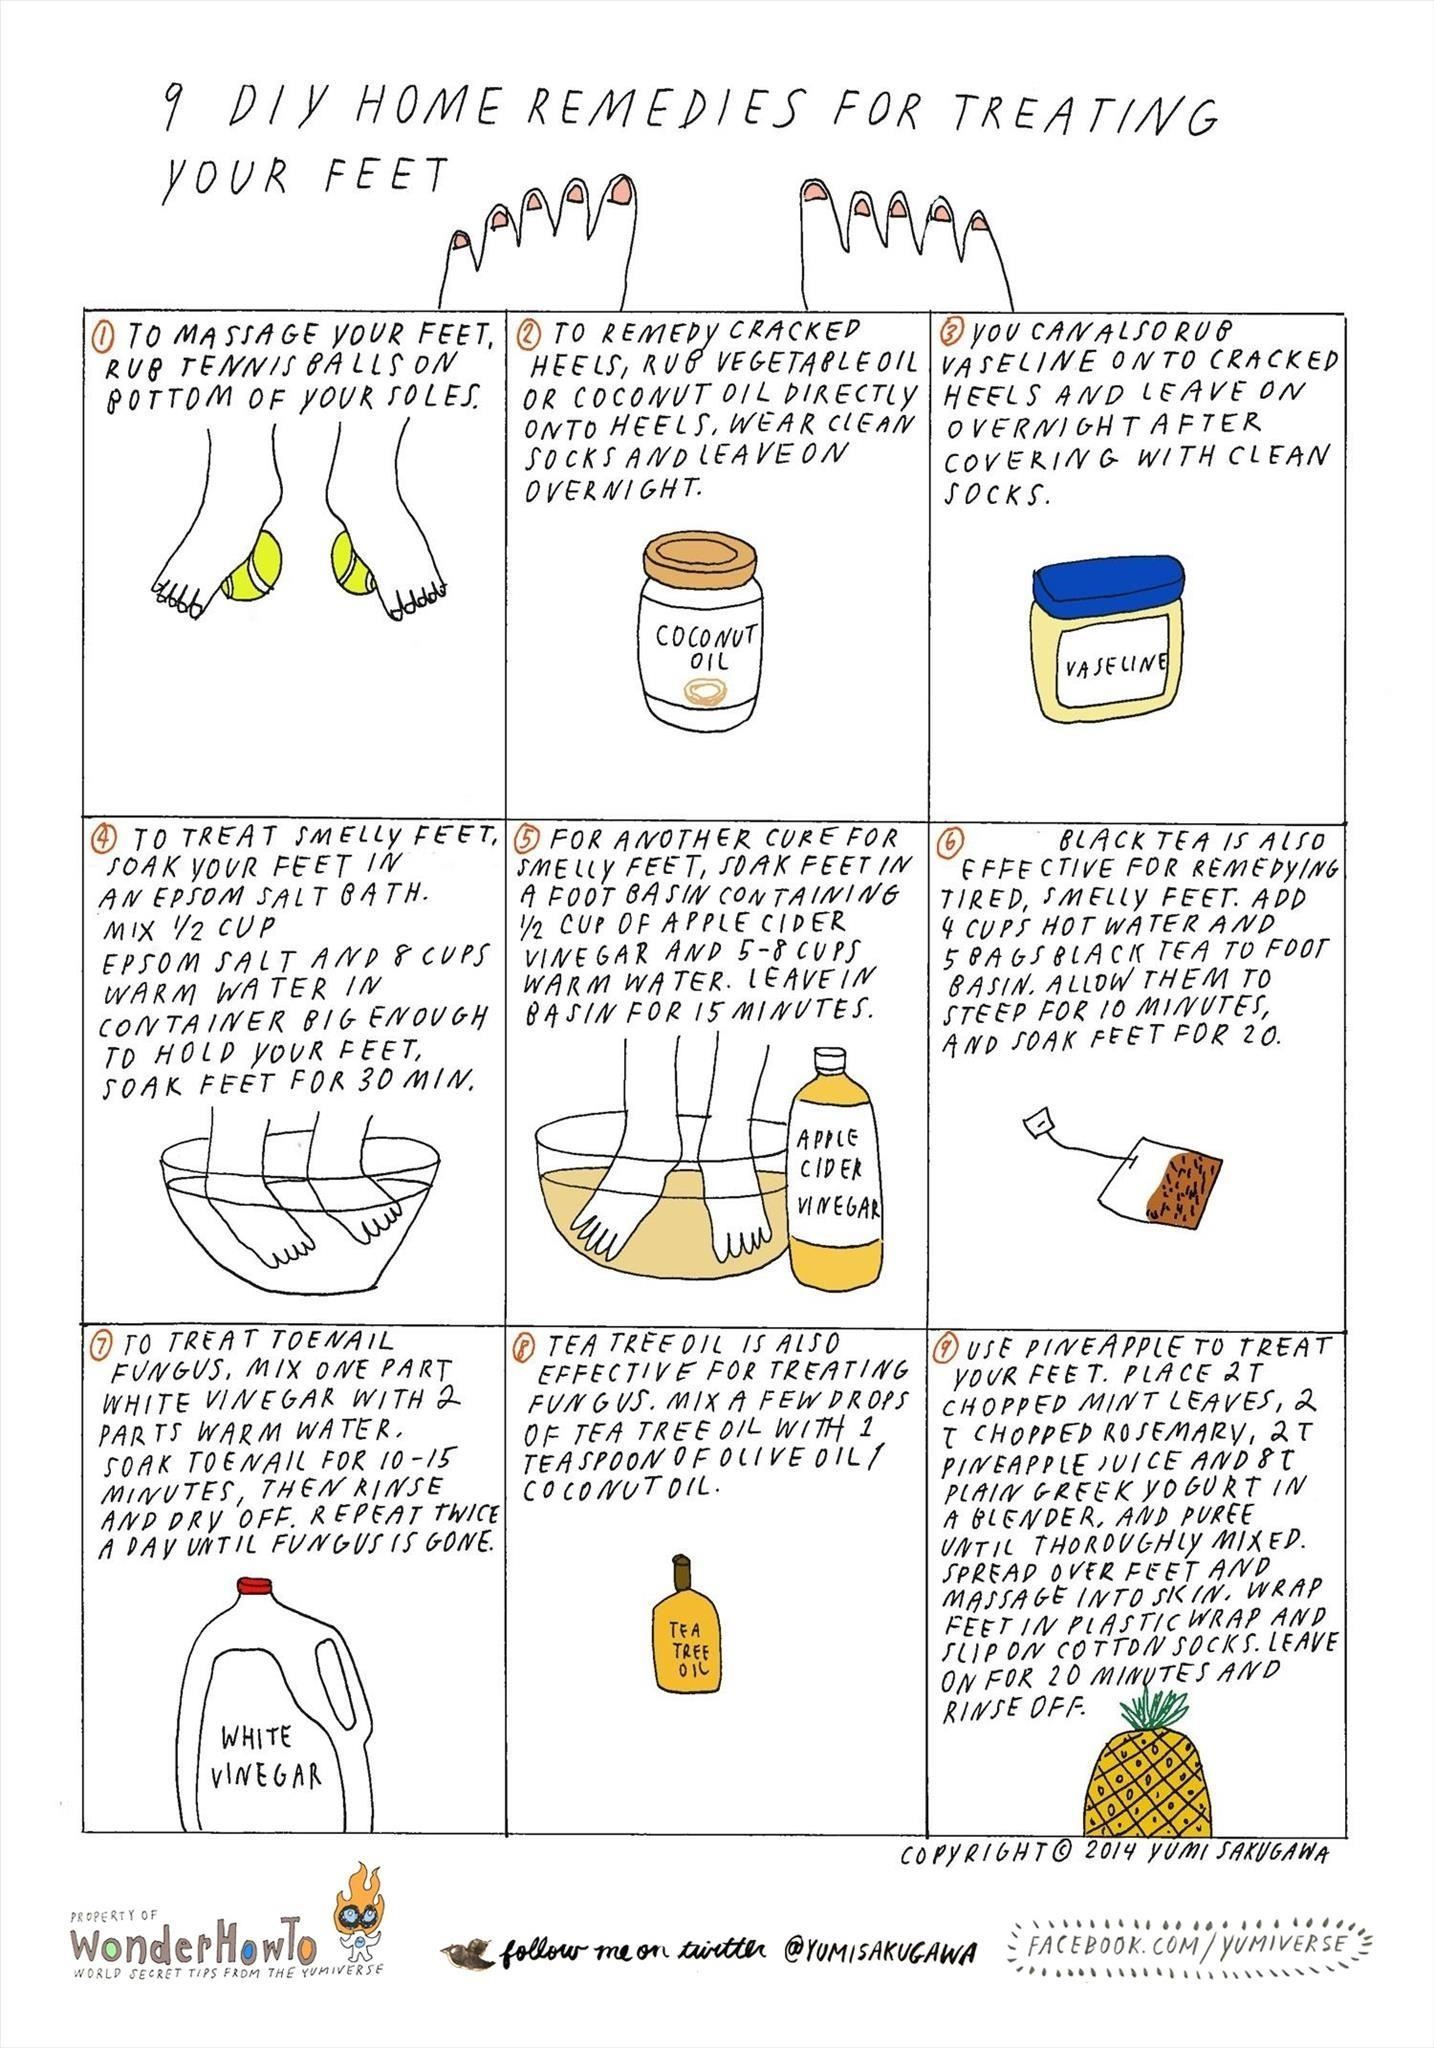 9 Home Remedies for Treating Common Feet Problems